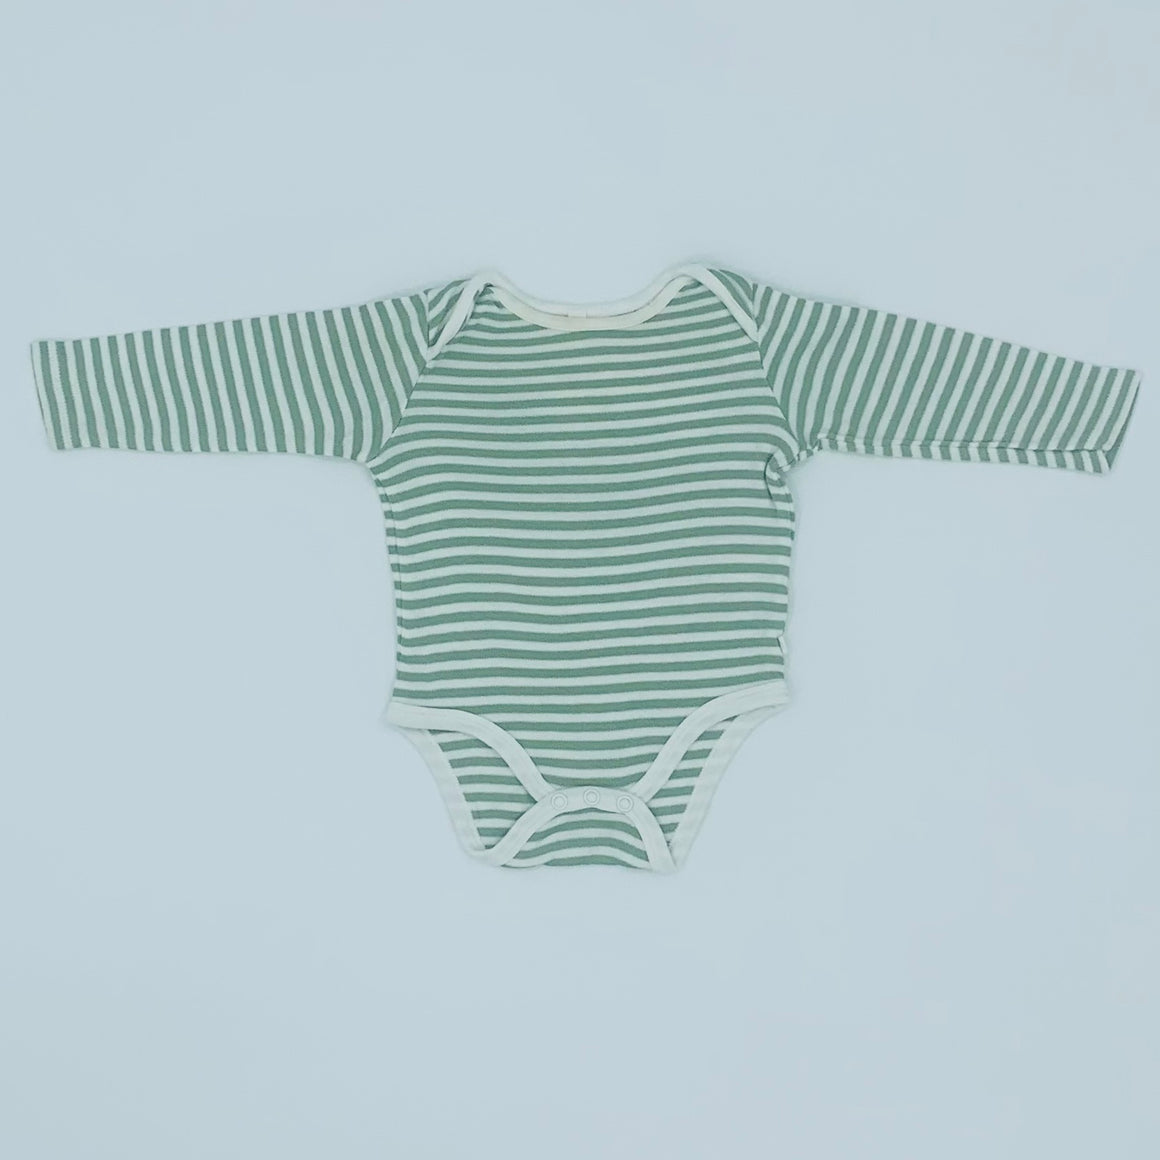 Gently Worn Baby Mori sage striped bodysuit size 6-9 months